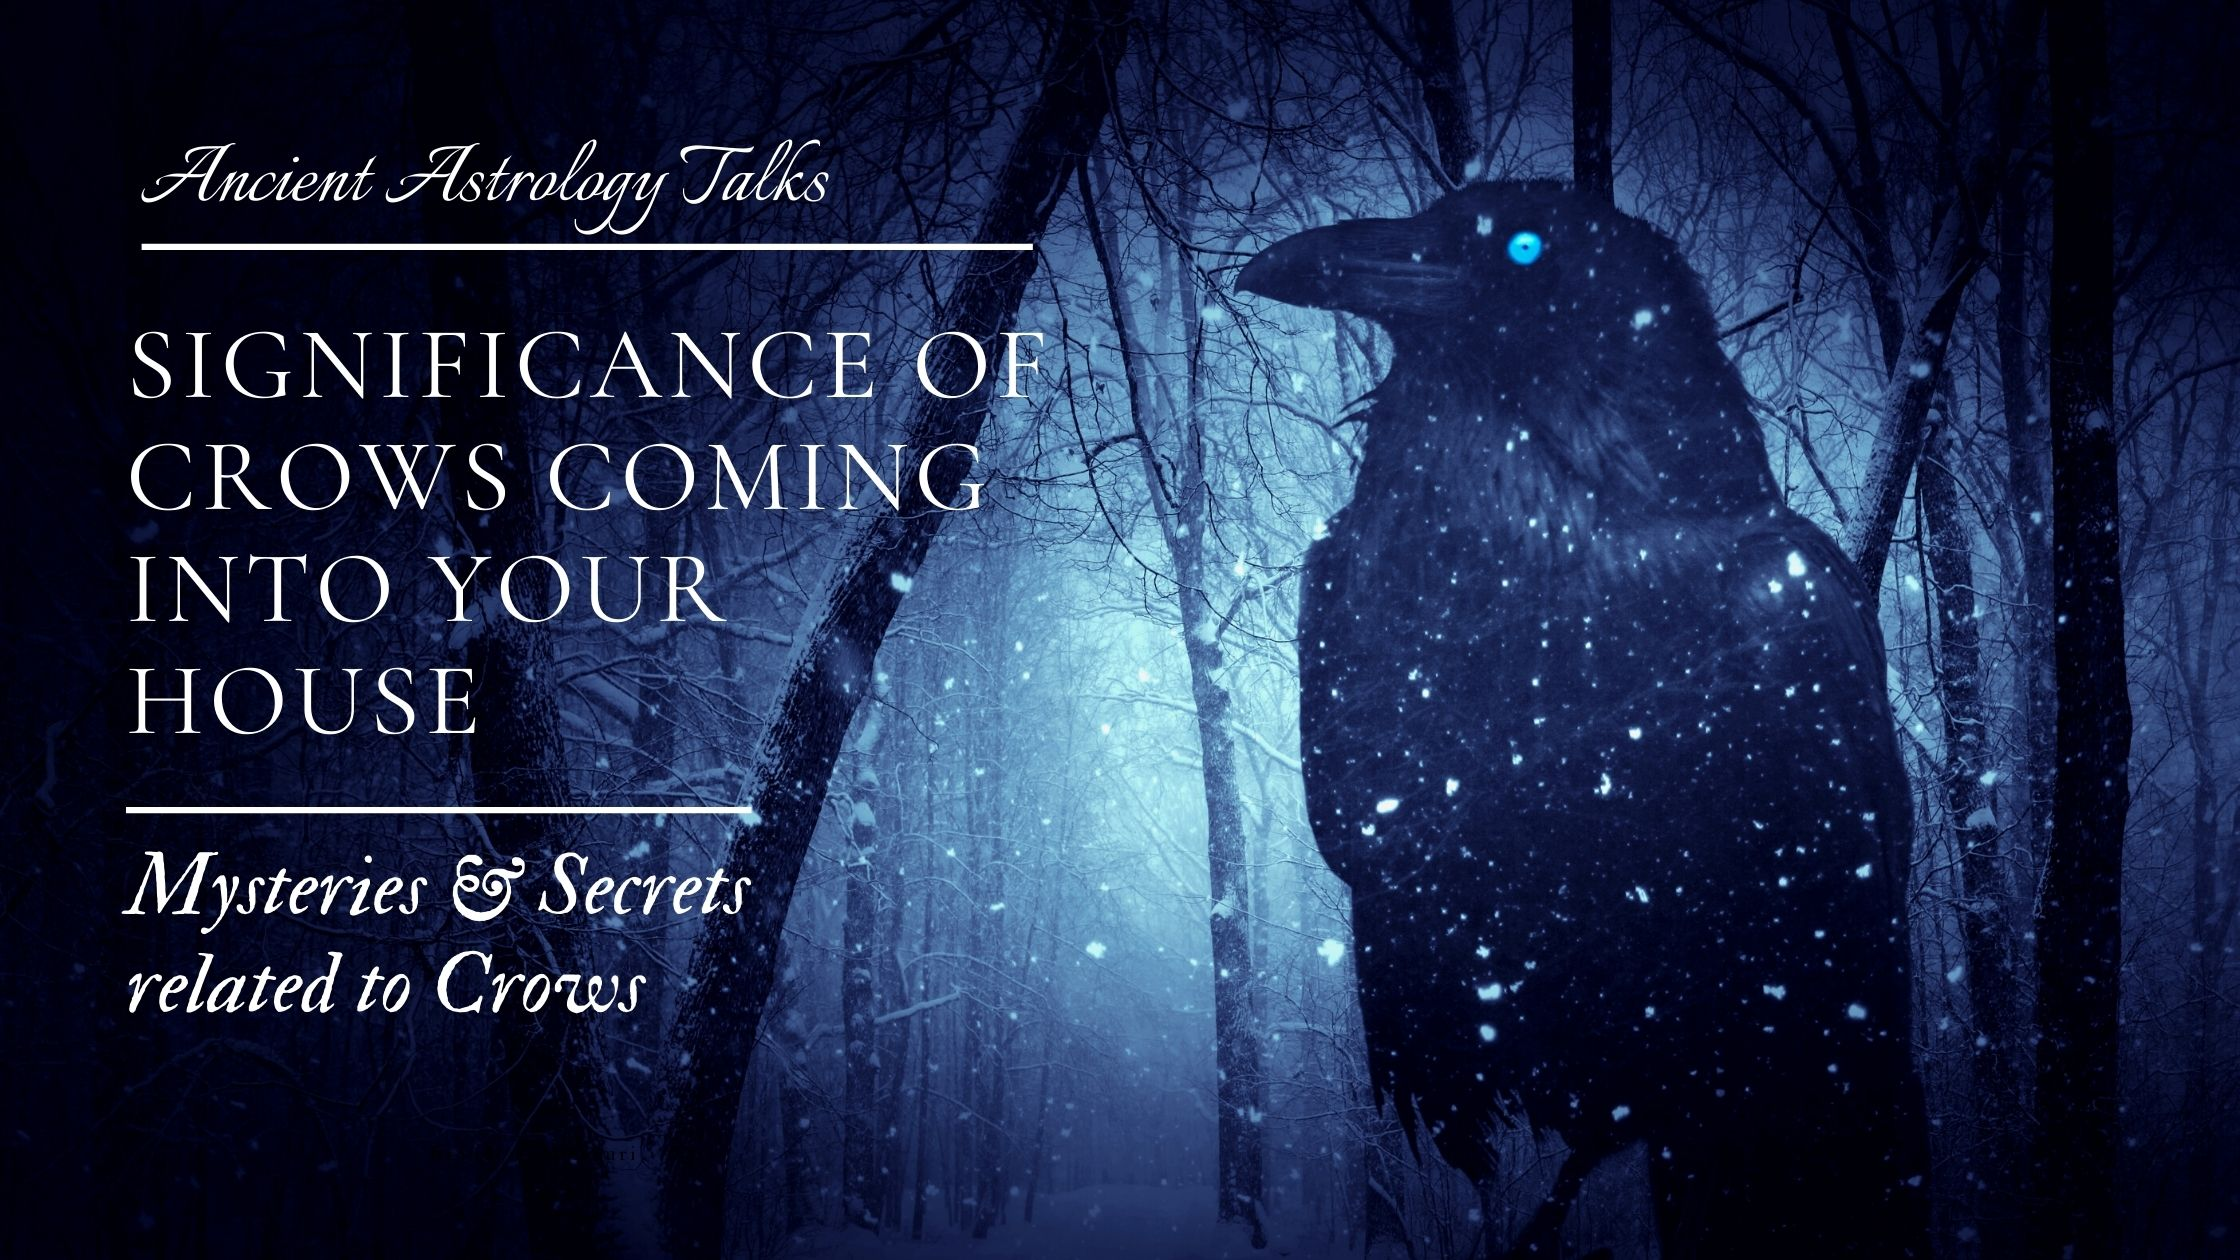 Significance of Crows Coming Into Your House